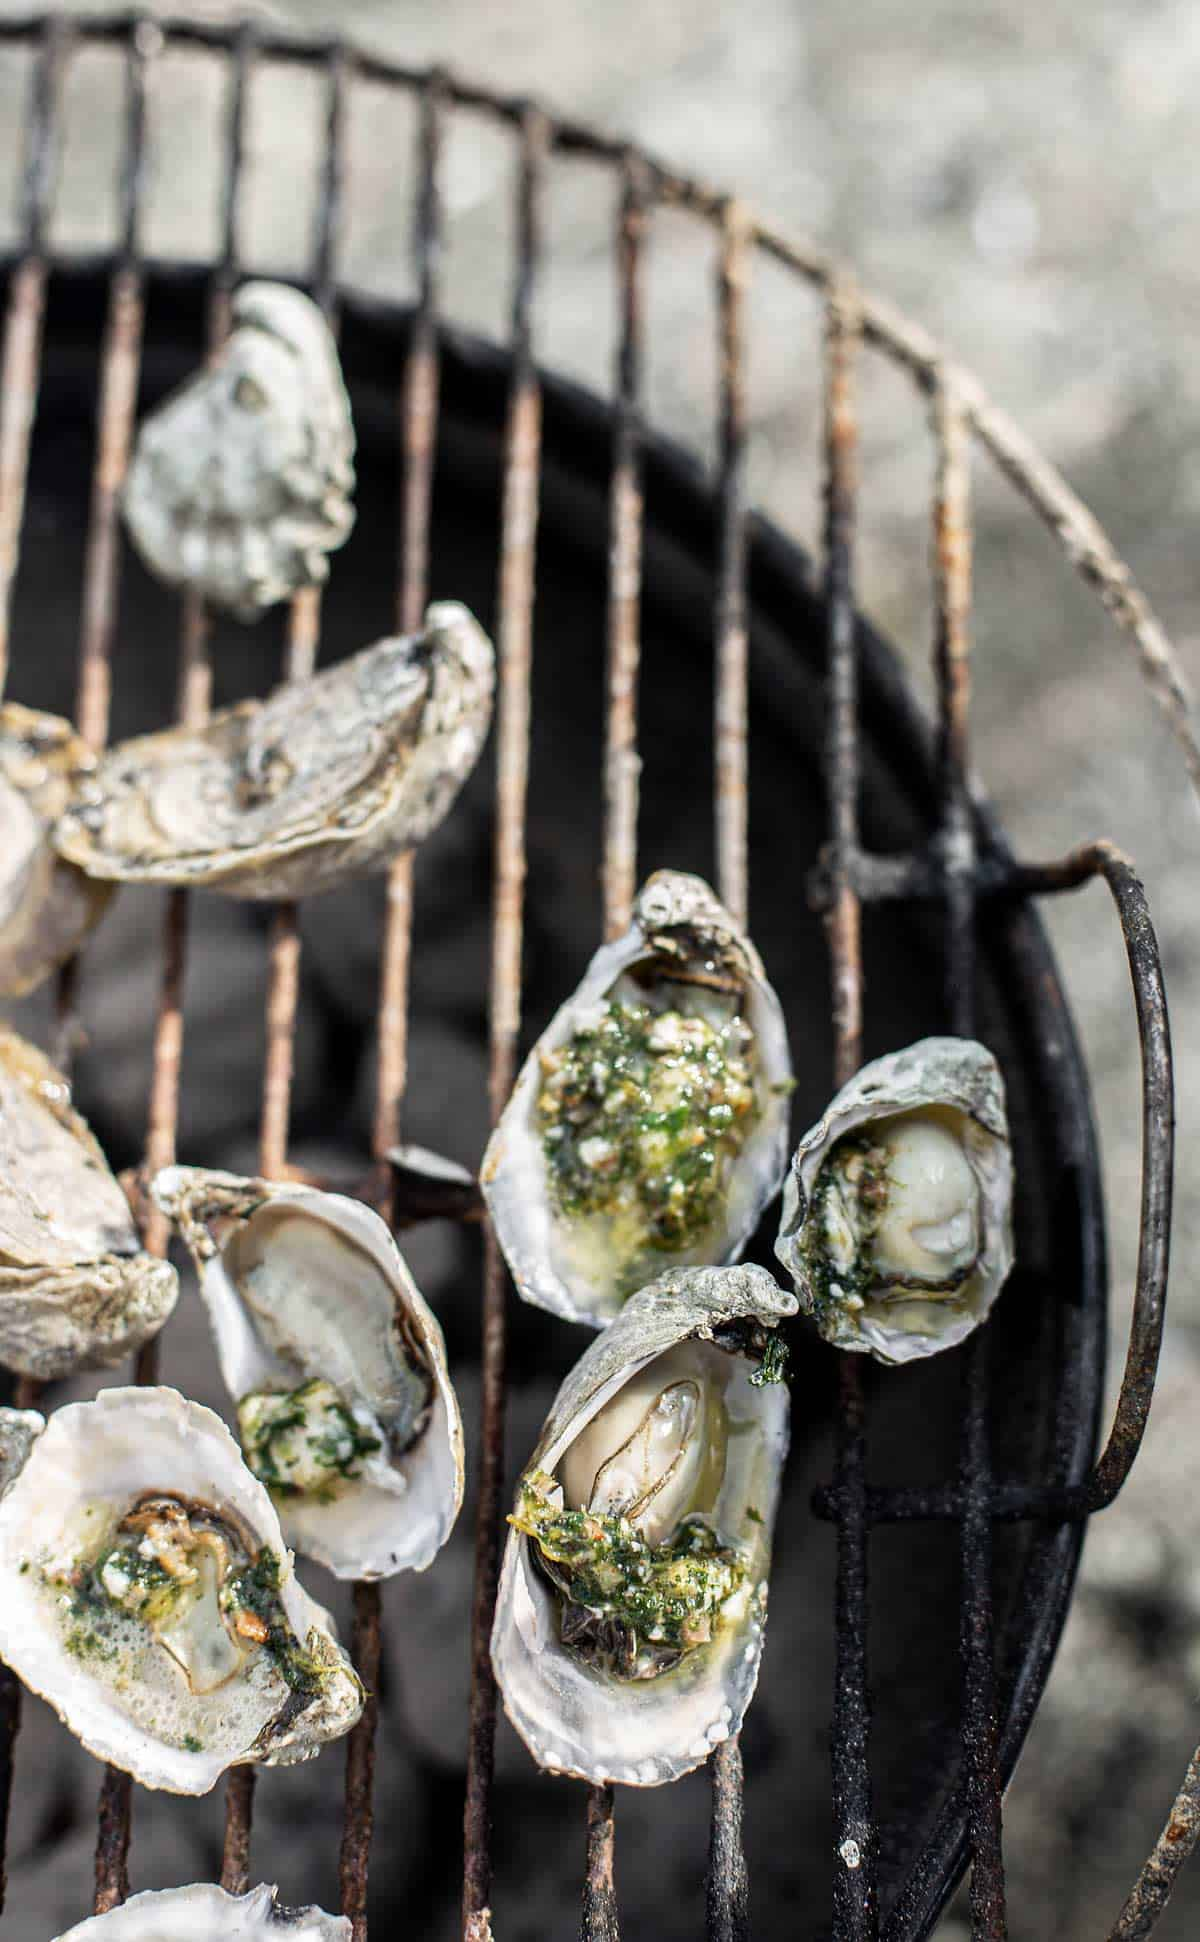 Quick Grilled Oysters Rockefeller with bacon compound butter is the perfect recipe to host last minute guests or a date night at home!